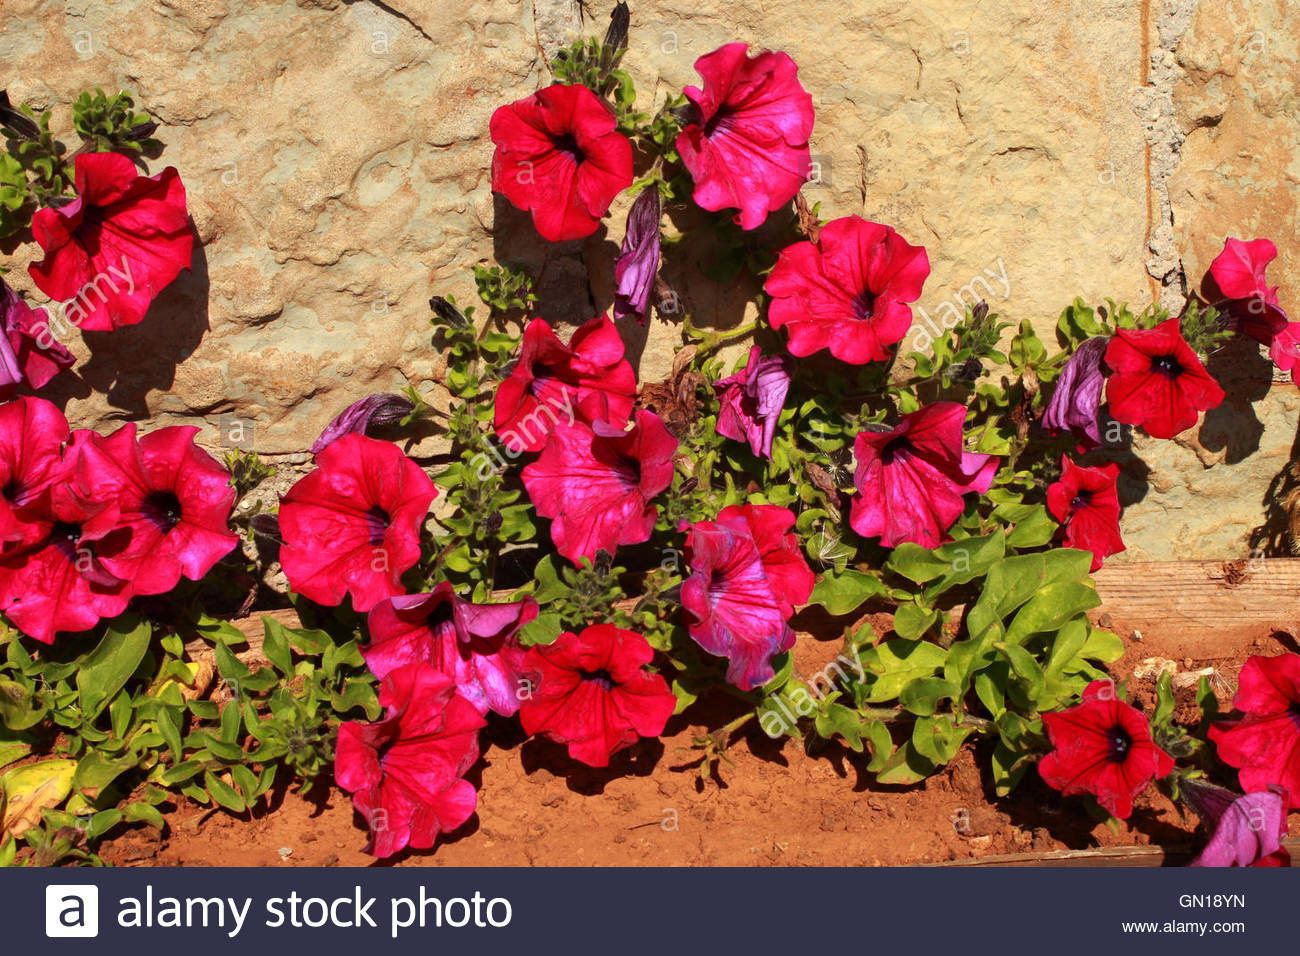 A flower bed with small magenta flowers - Stock Image